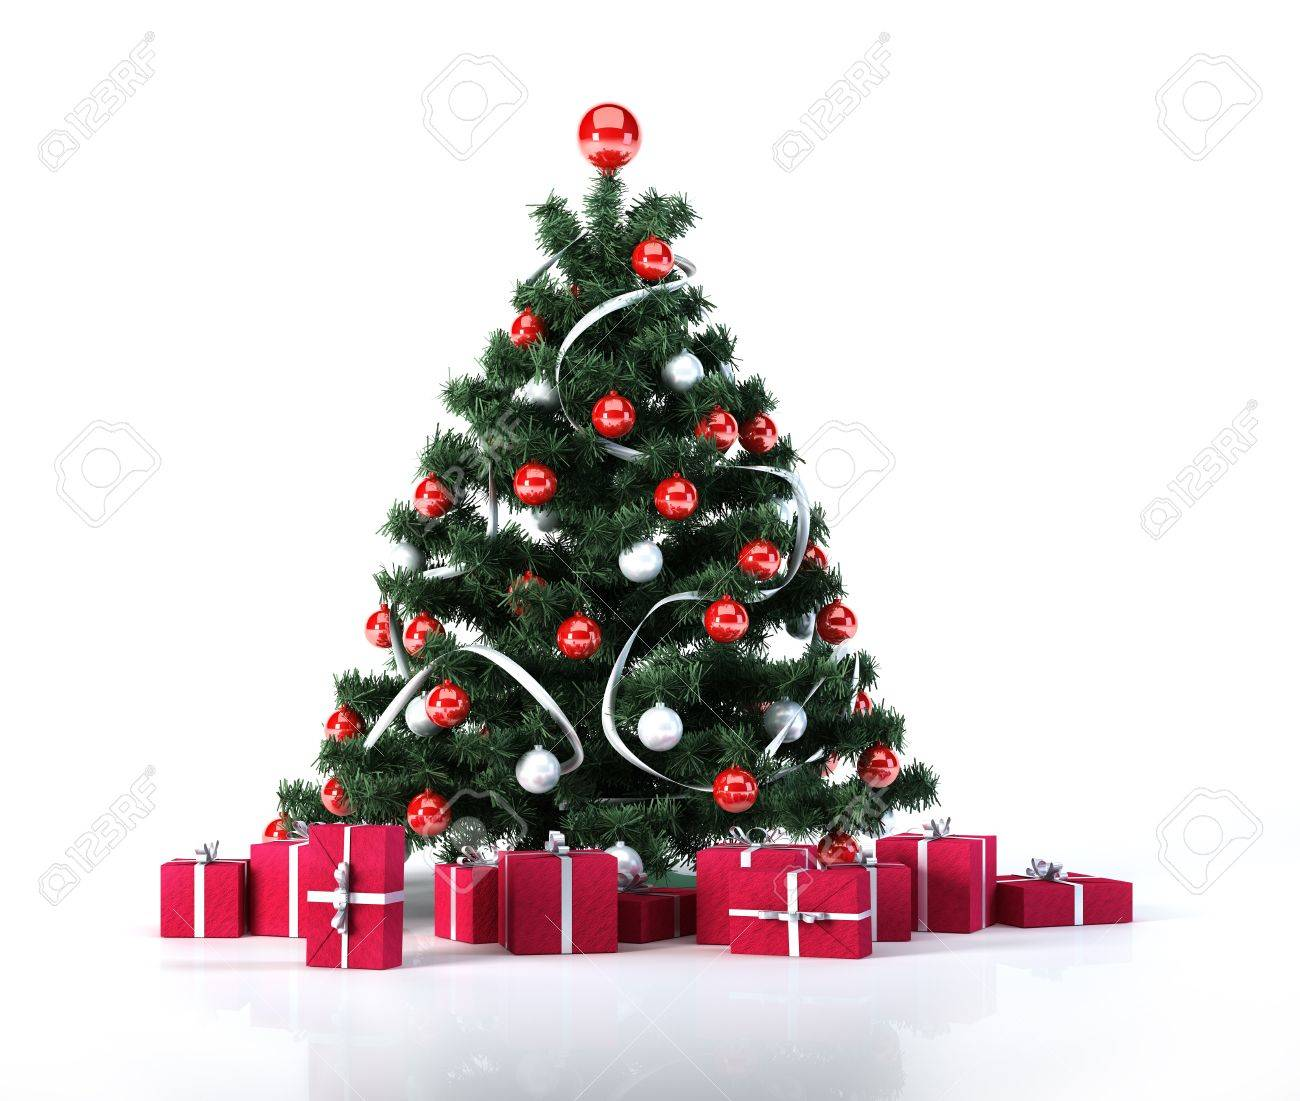 Christmas Tree With Golden And Decoration Below It There Are Several Gifts Packages All